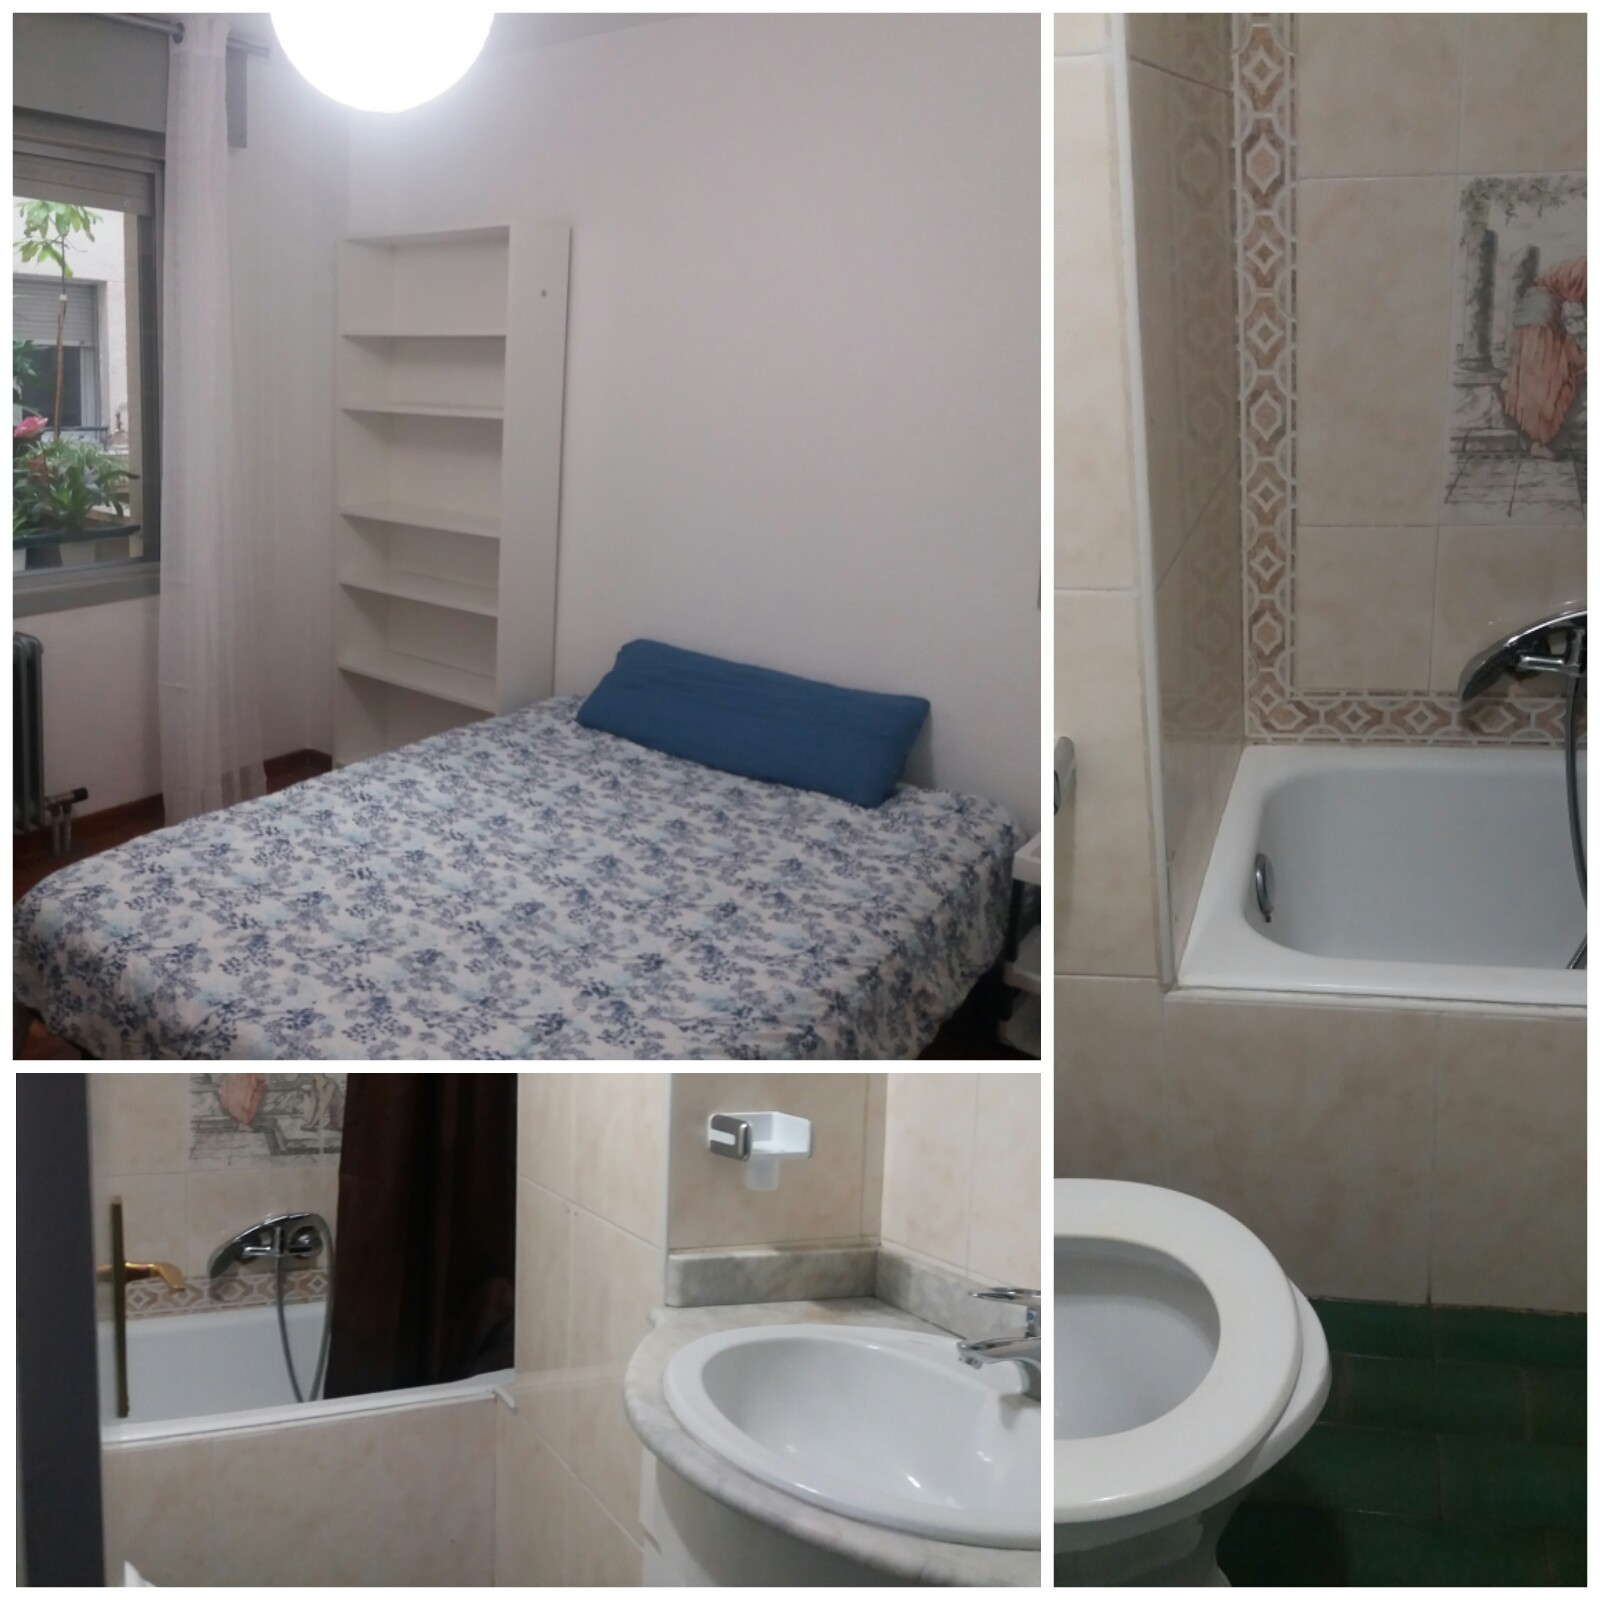 room-adapted-study-private-bathroom-43faabfe4d32471185629502ada8b741